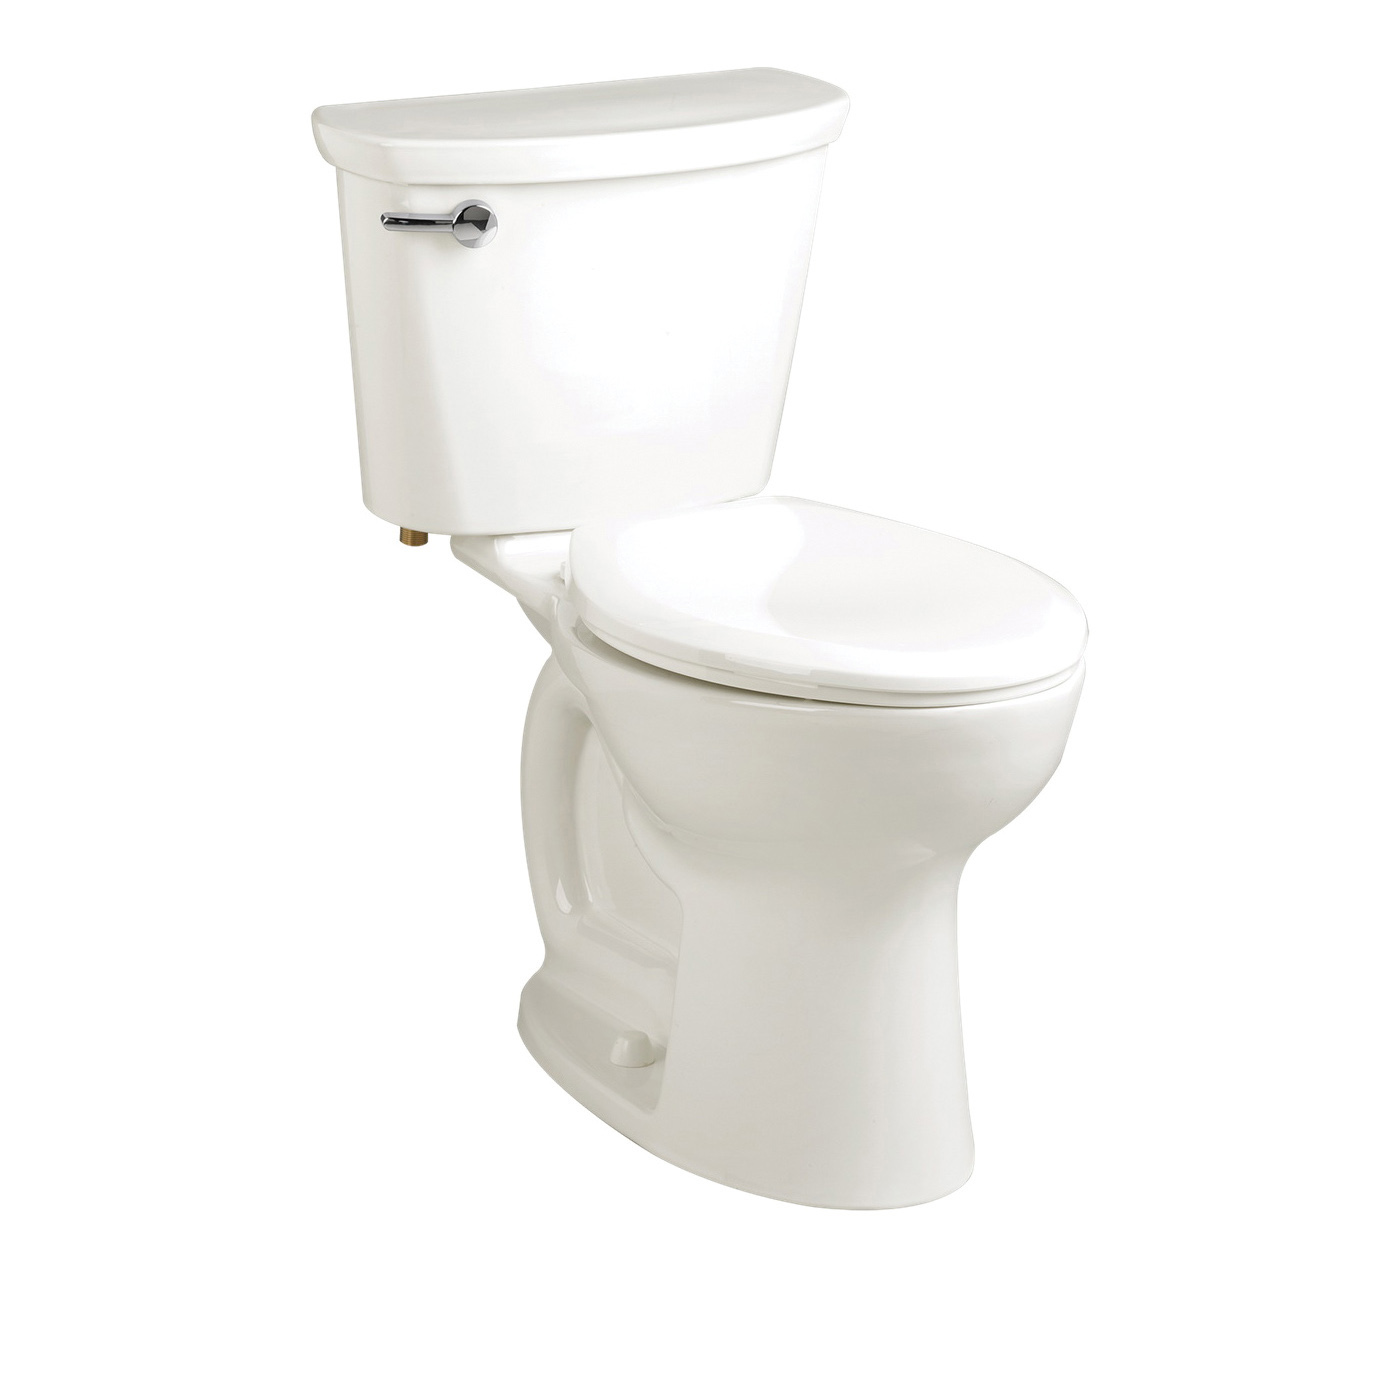 American Standard 215FC104.020 Cadet® Pro™ Right Height™ 2-Piece Toilet, Elongated Bowl, 16-1/2 in H Rim, 1.28 gpf, White, Import